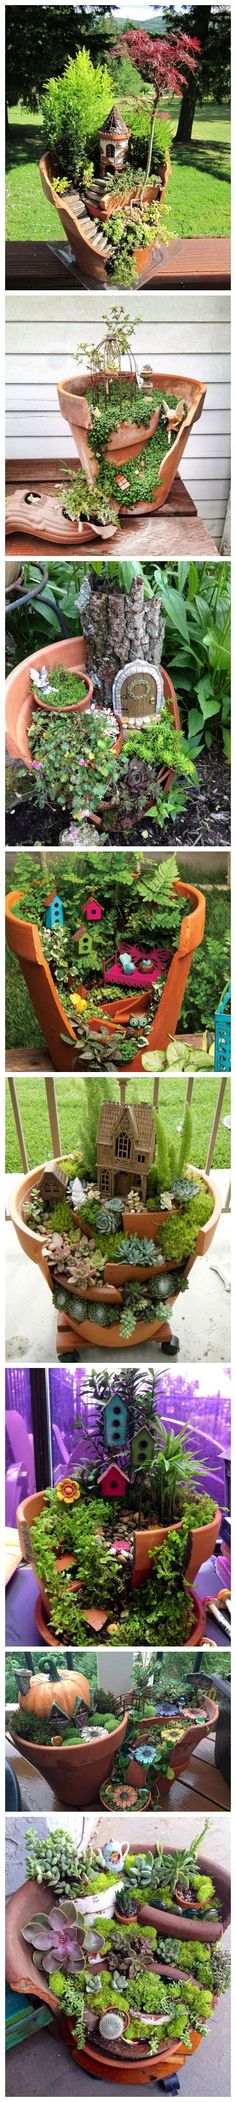 Creative ideas for flower pots. PS. for more inspirations, pls visit us at http://www.facebook.com/zosomart